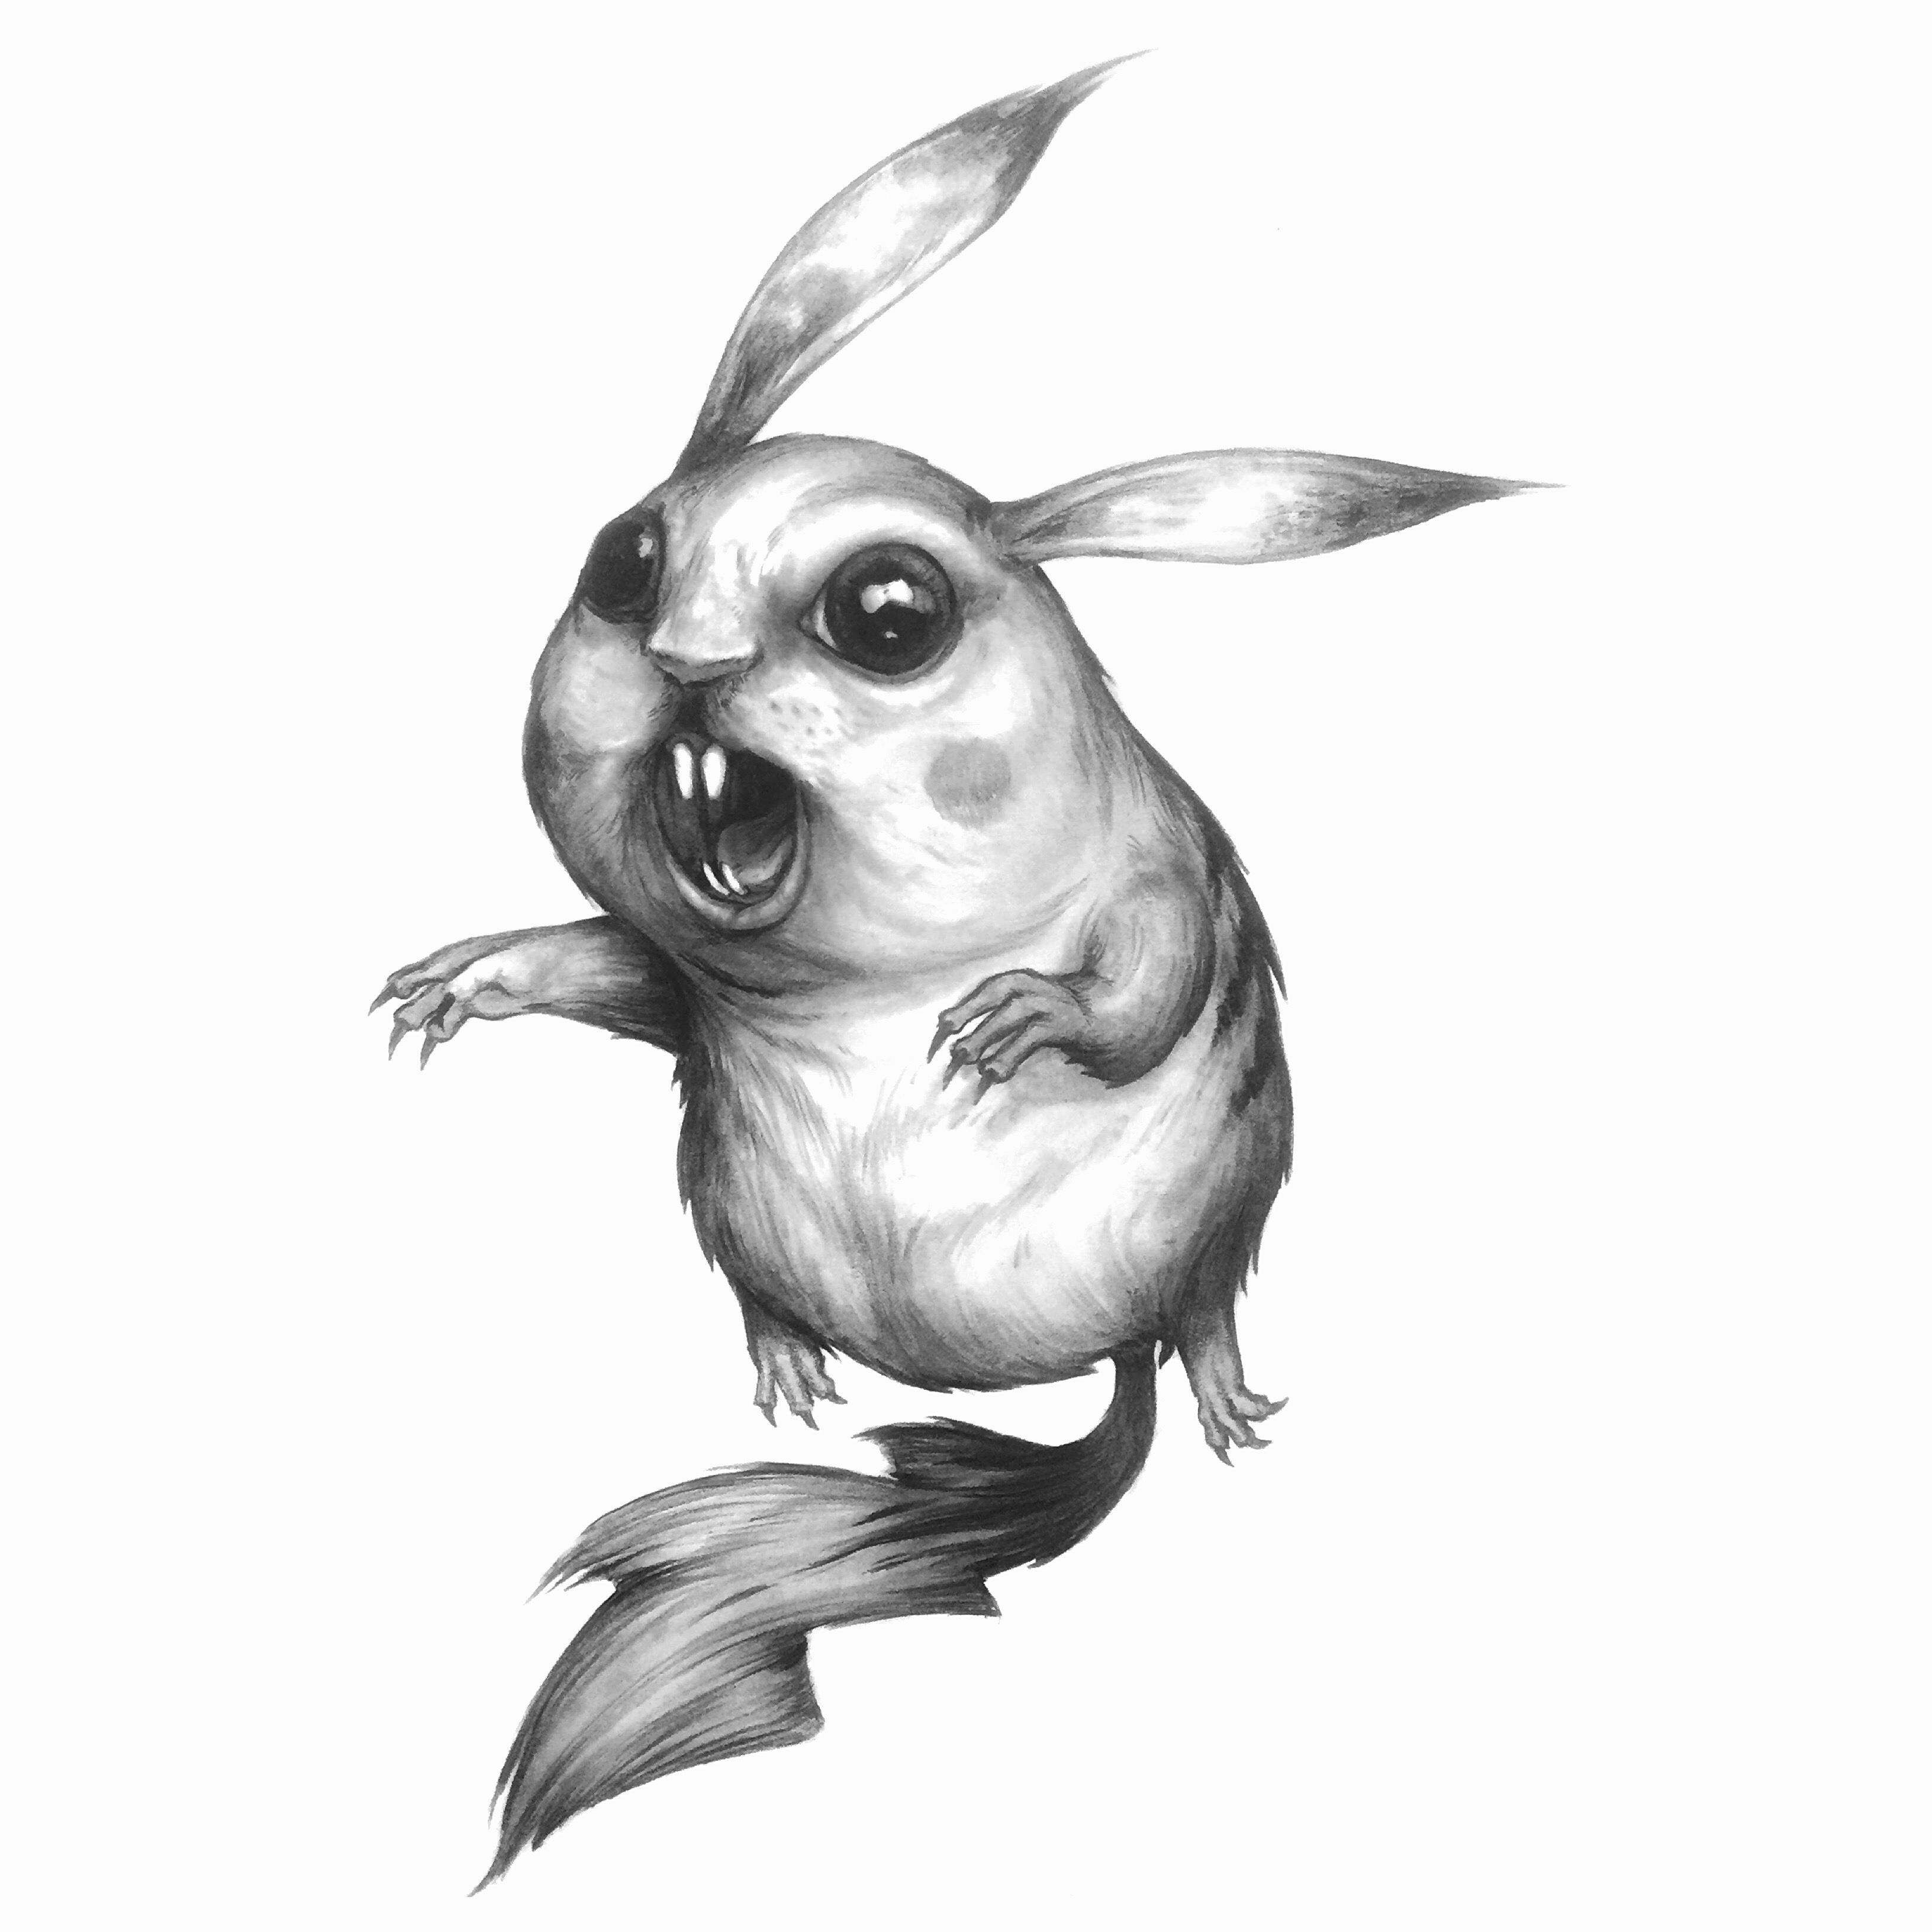 draw pikachu pikachu images for drawing at paintingvalleycom explore draw pikachu